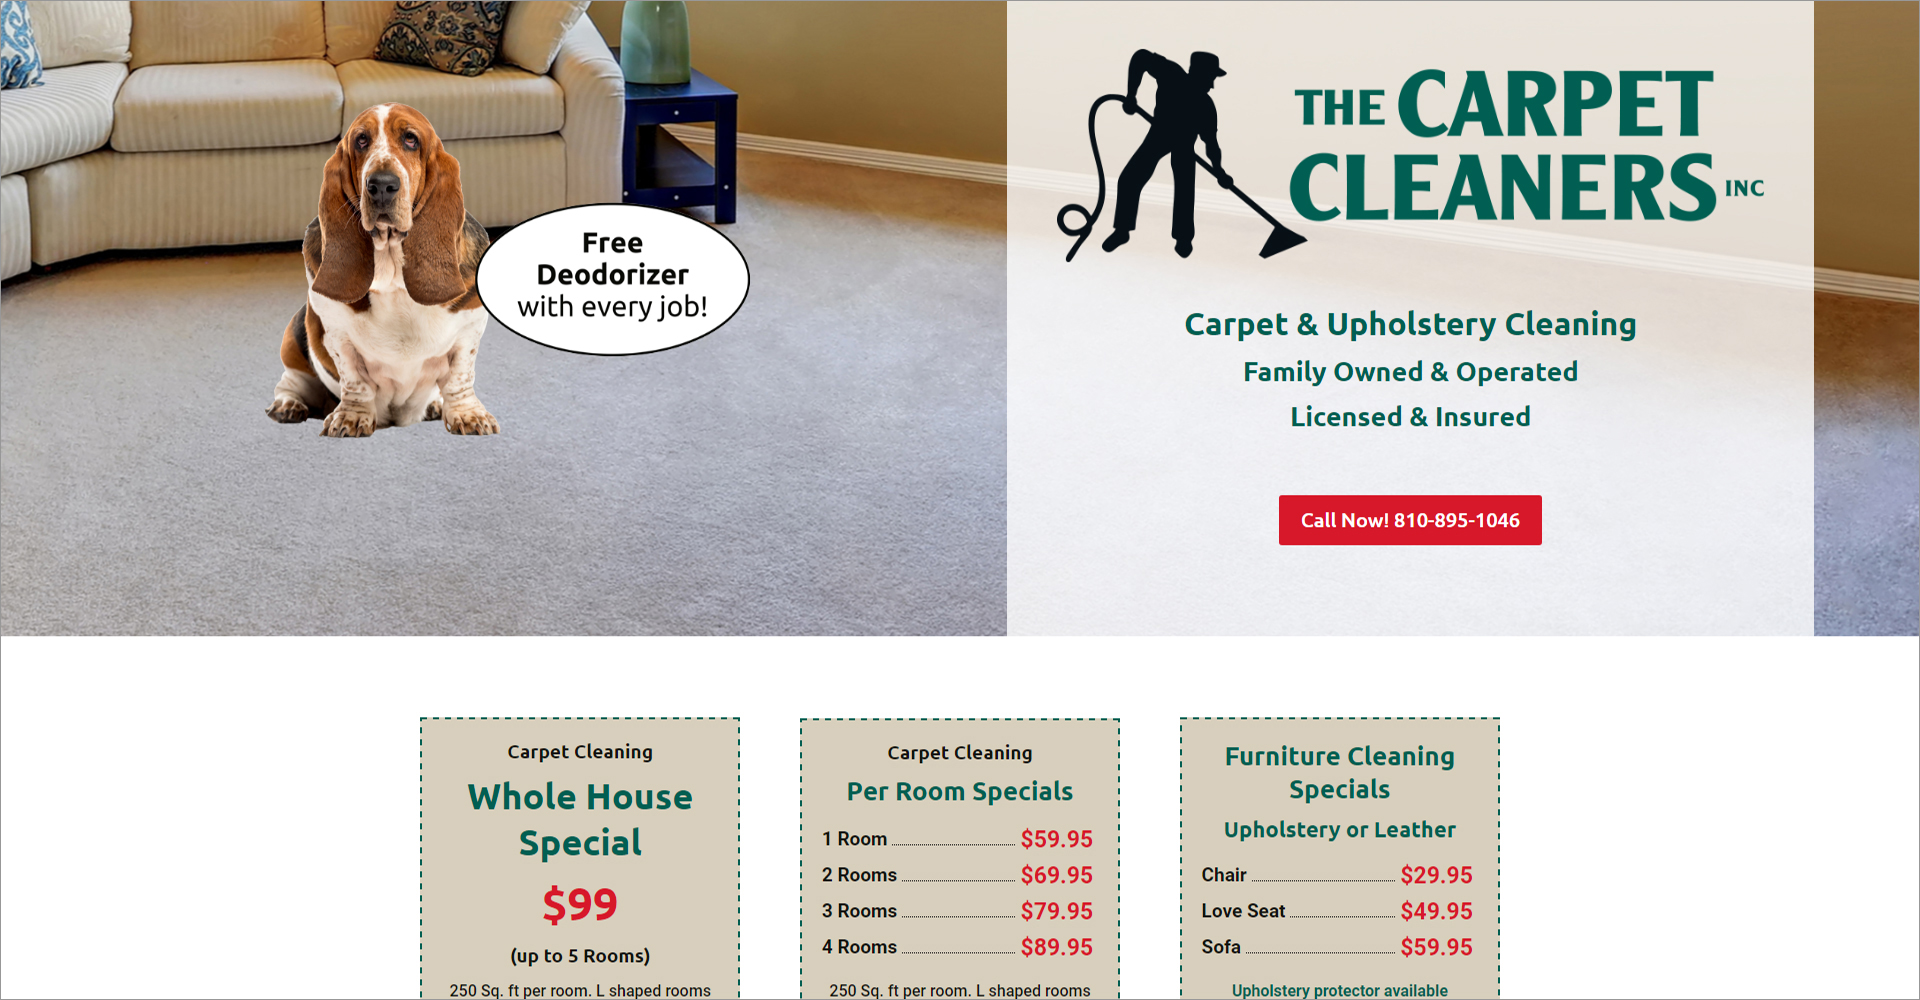 The Carpet Cleaners, Inc - Zoda Design